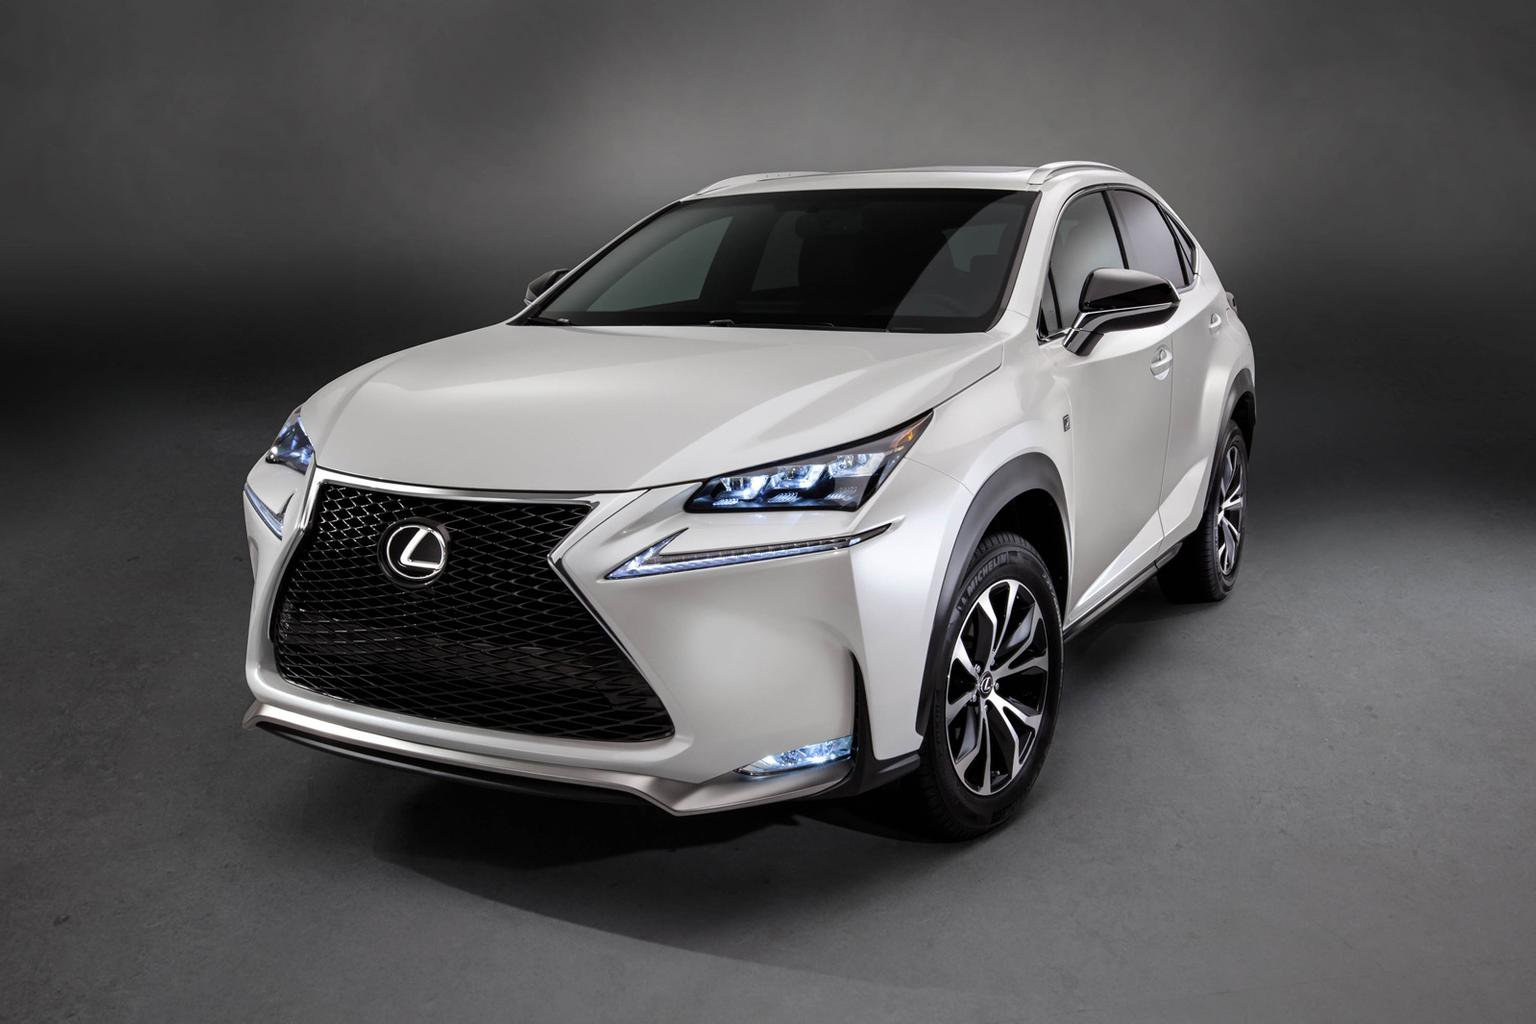 2015 Lexus NX200t - prices and specs